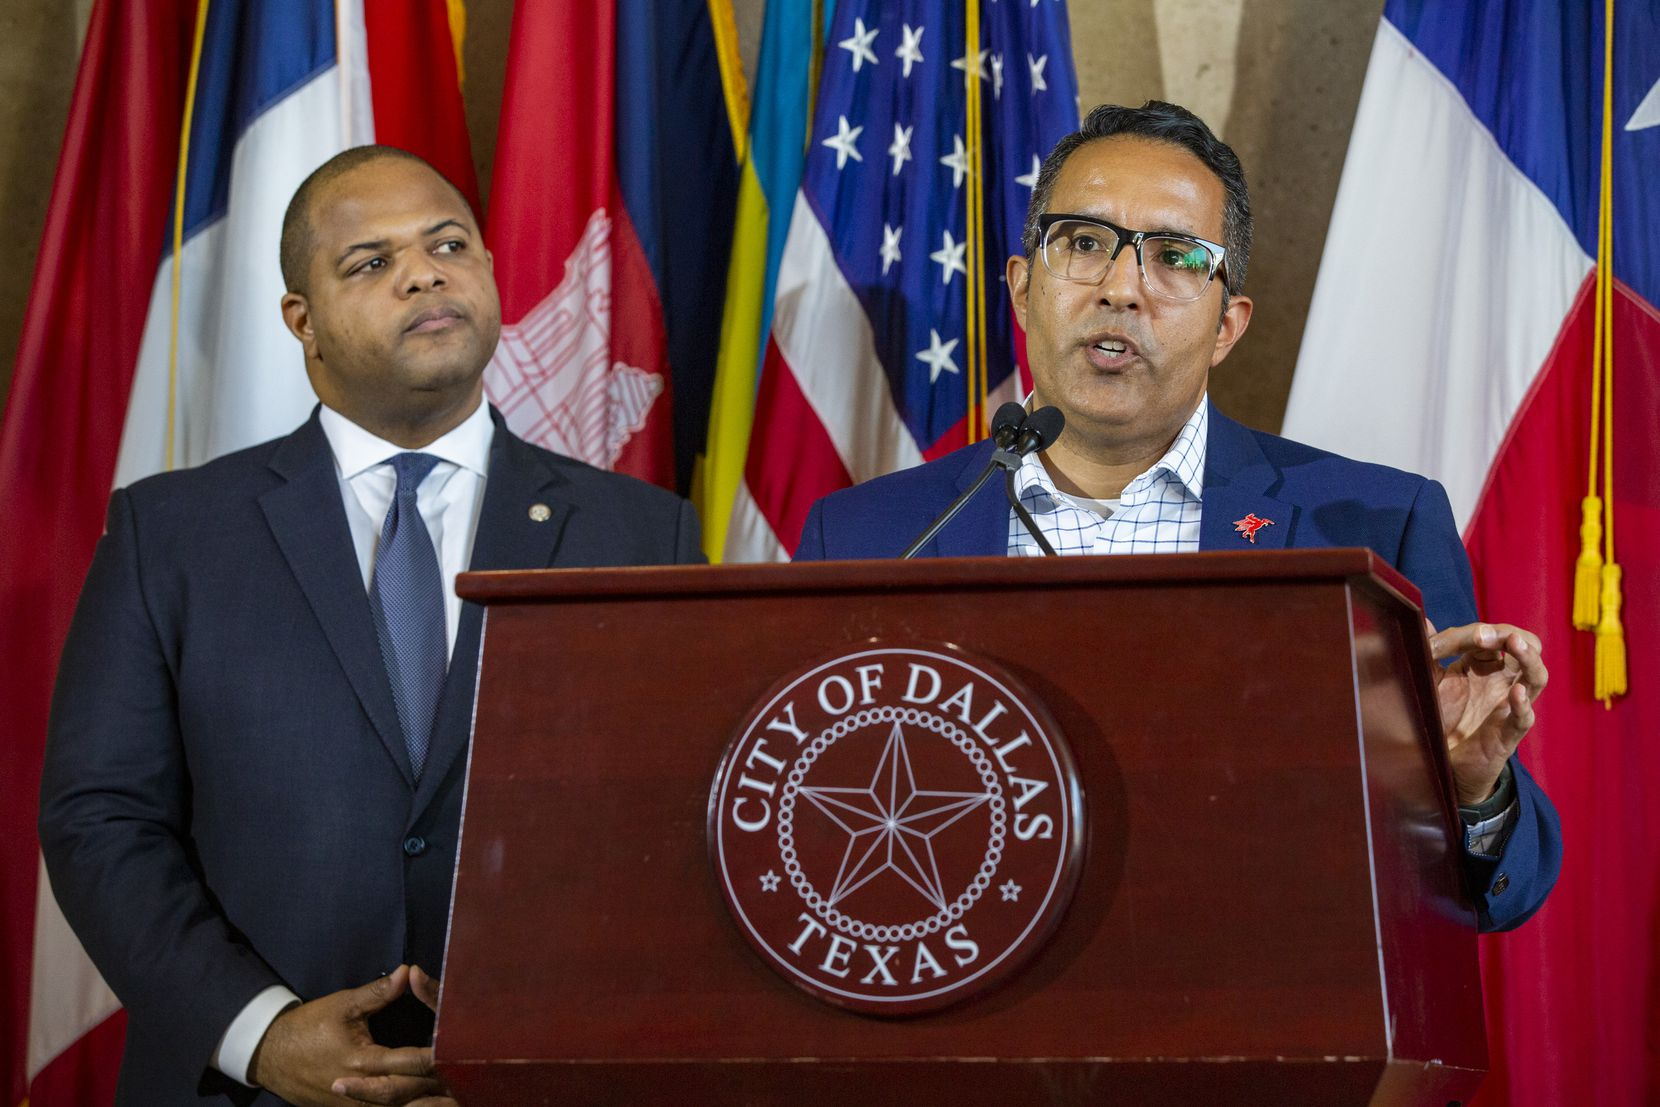 Assistant City Manager Joey Zapata (right) and Mayor Eric Johnson address the cancellation of the St. Patrick's Parade and block party -- related to precautionary measures in light of COVID-19 cases in Dallas County this week -- during a press conference at Dallas City Hall in Dallas on Wednesday, March 11, 2020.